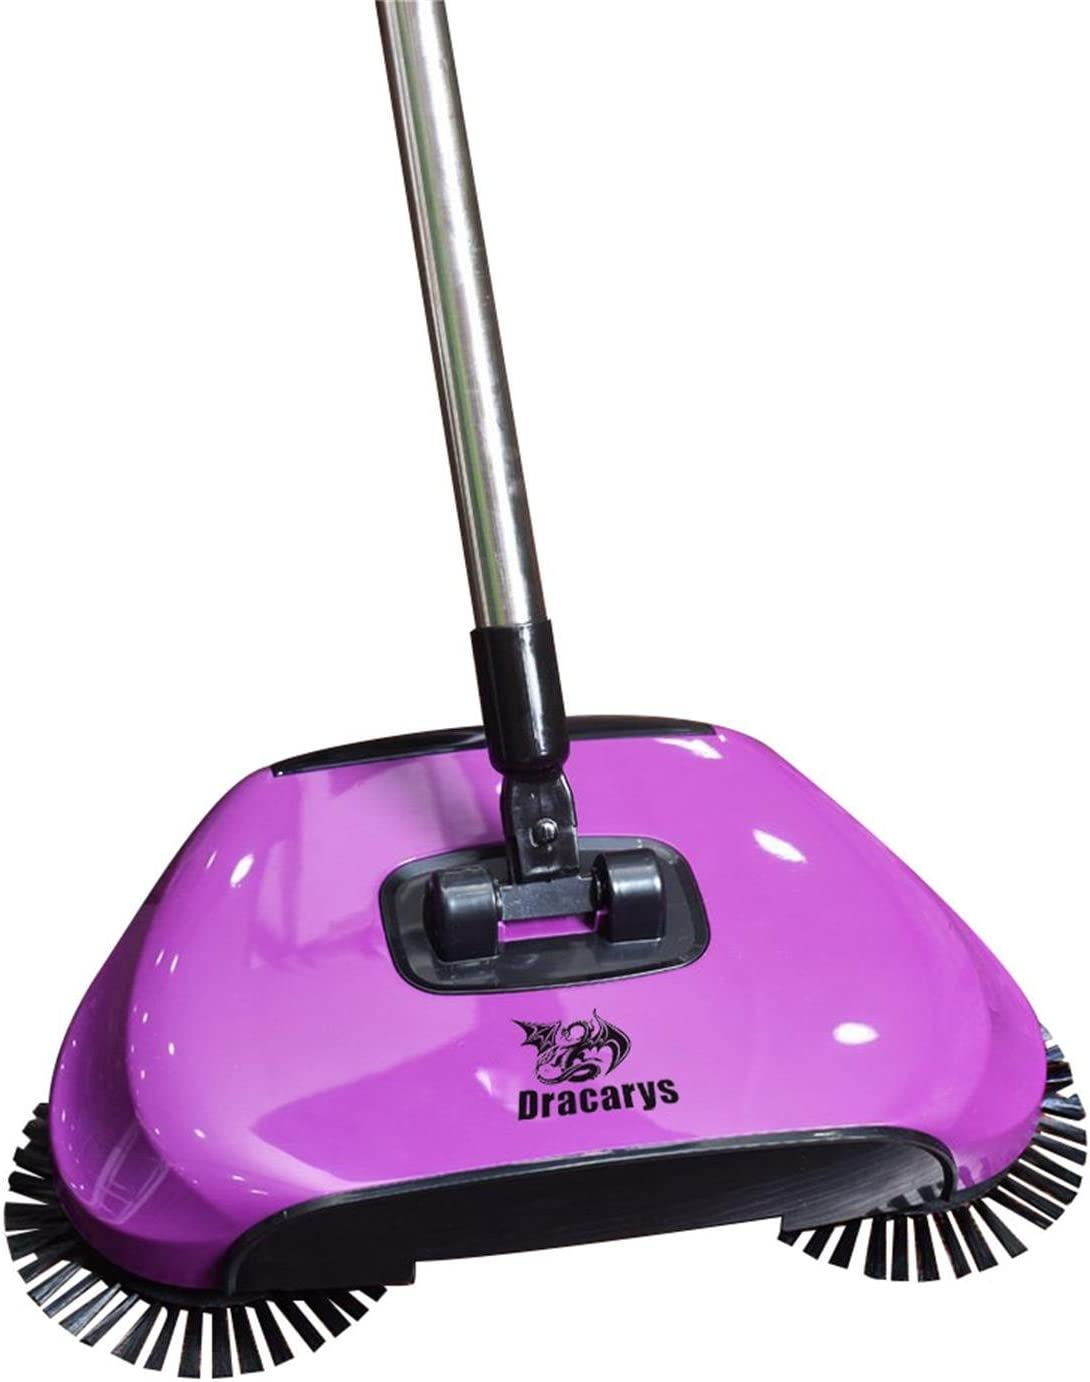 Dracarys Lazy 3 in 1 Household Cleaning Hand Push Automatic Sweeper Broom – Including Broom & Dustpan & Trash Bin – Cleaner Without Electricity Environmental (Purple)